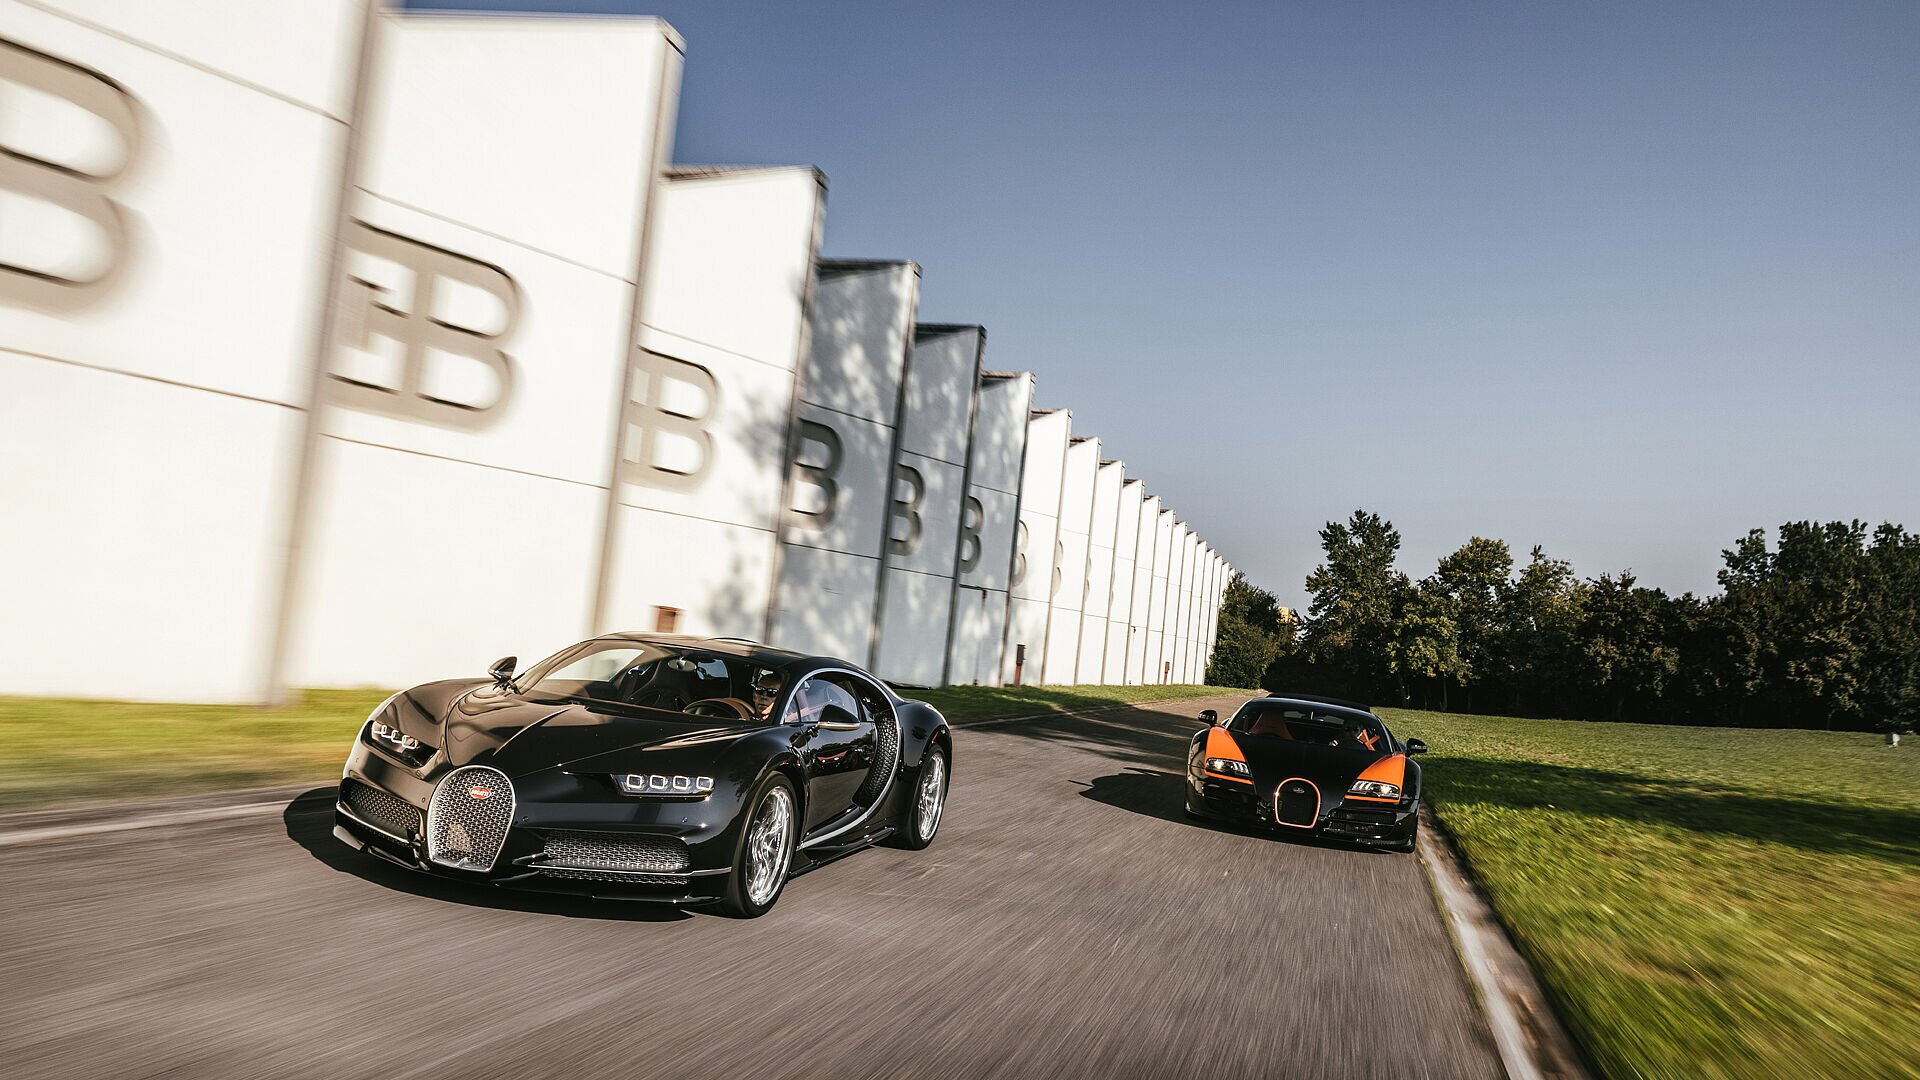 Bugatti anniversary tour – road trip between the past and present